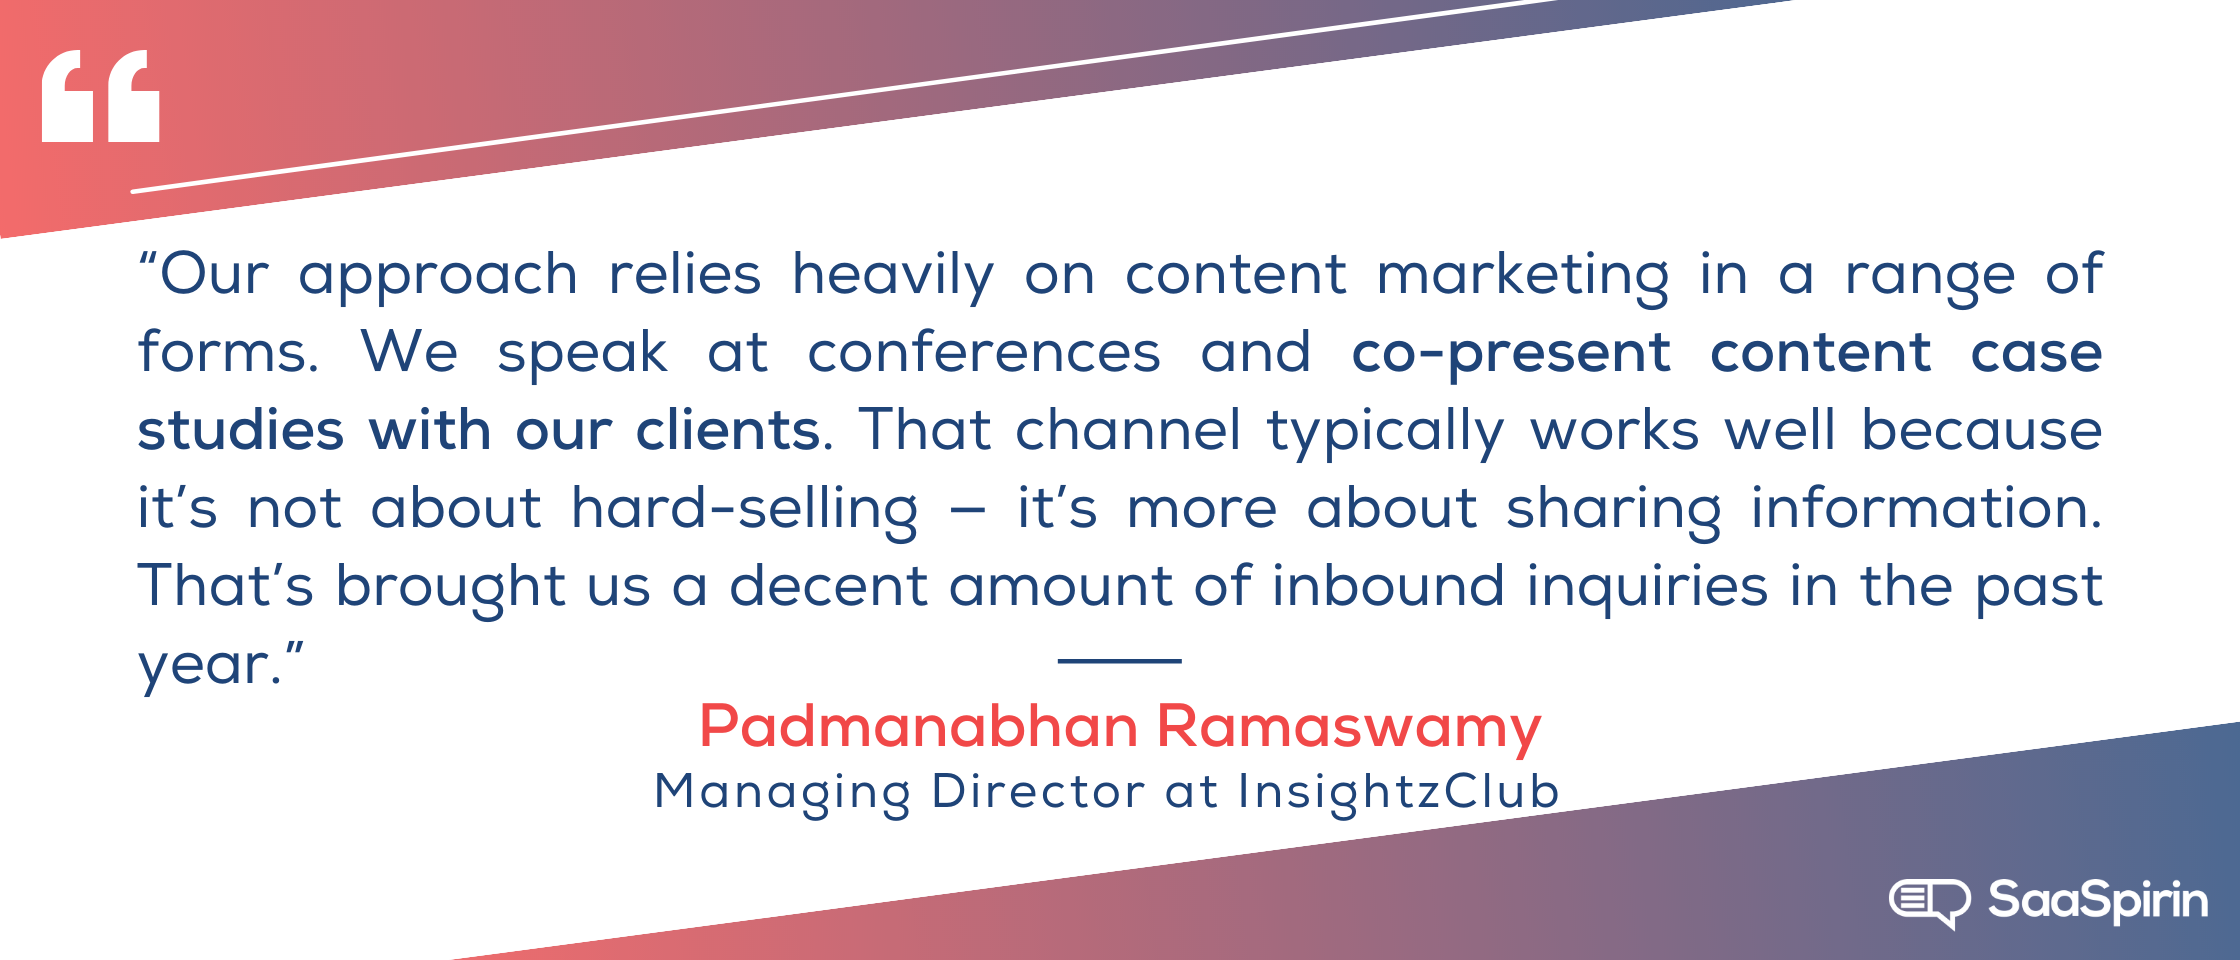 Our-approach-relies-heavily-on-content-marketing-in-a-range-of-forms-We-speak-at-conferences-and-co-present-content-case-studies-with-our-clients-That-channel-typically-works-well-because-its-not-about-hard-selling-.png